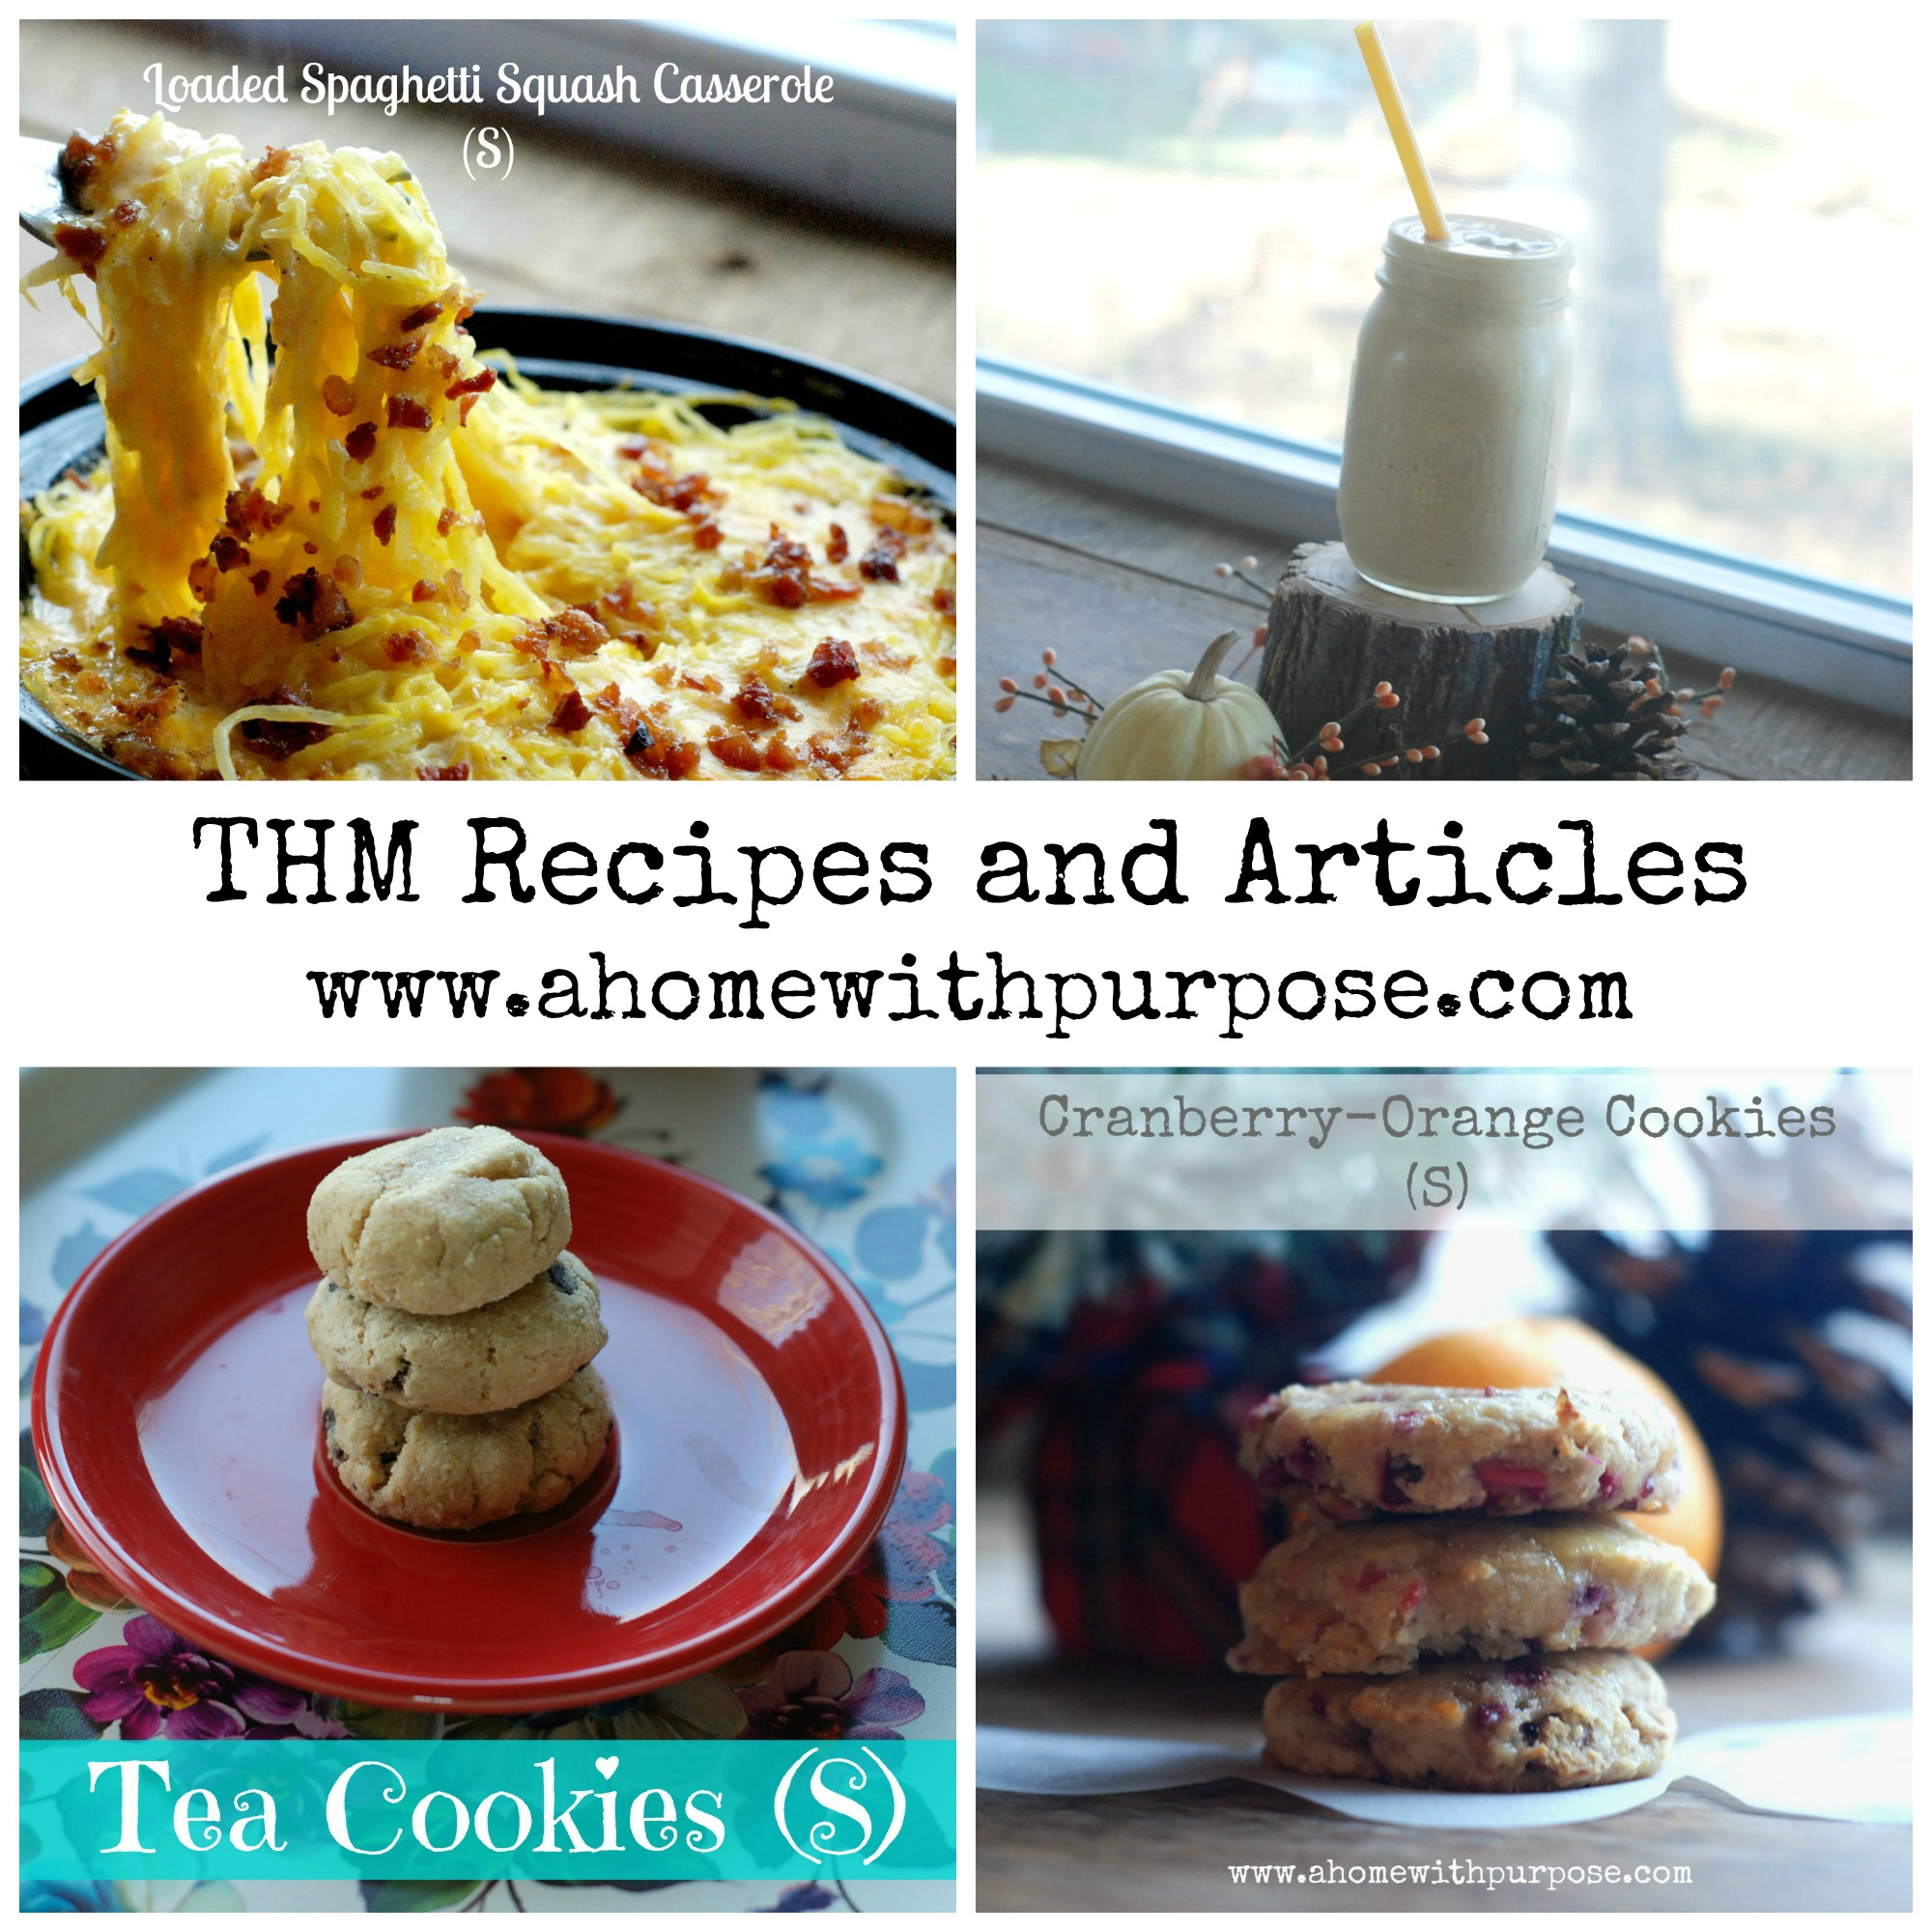 Thm recipes articles a home with purpose thmrecipesarticles forumfinder Images